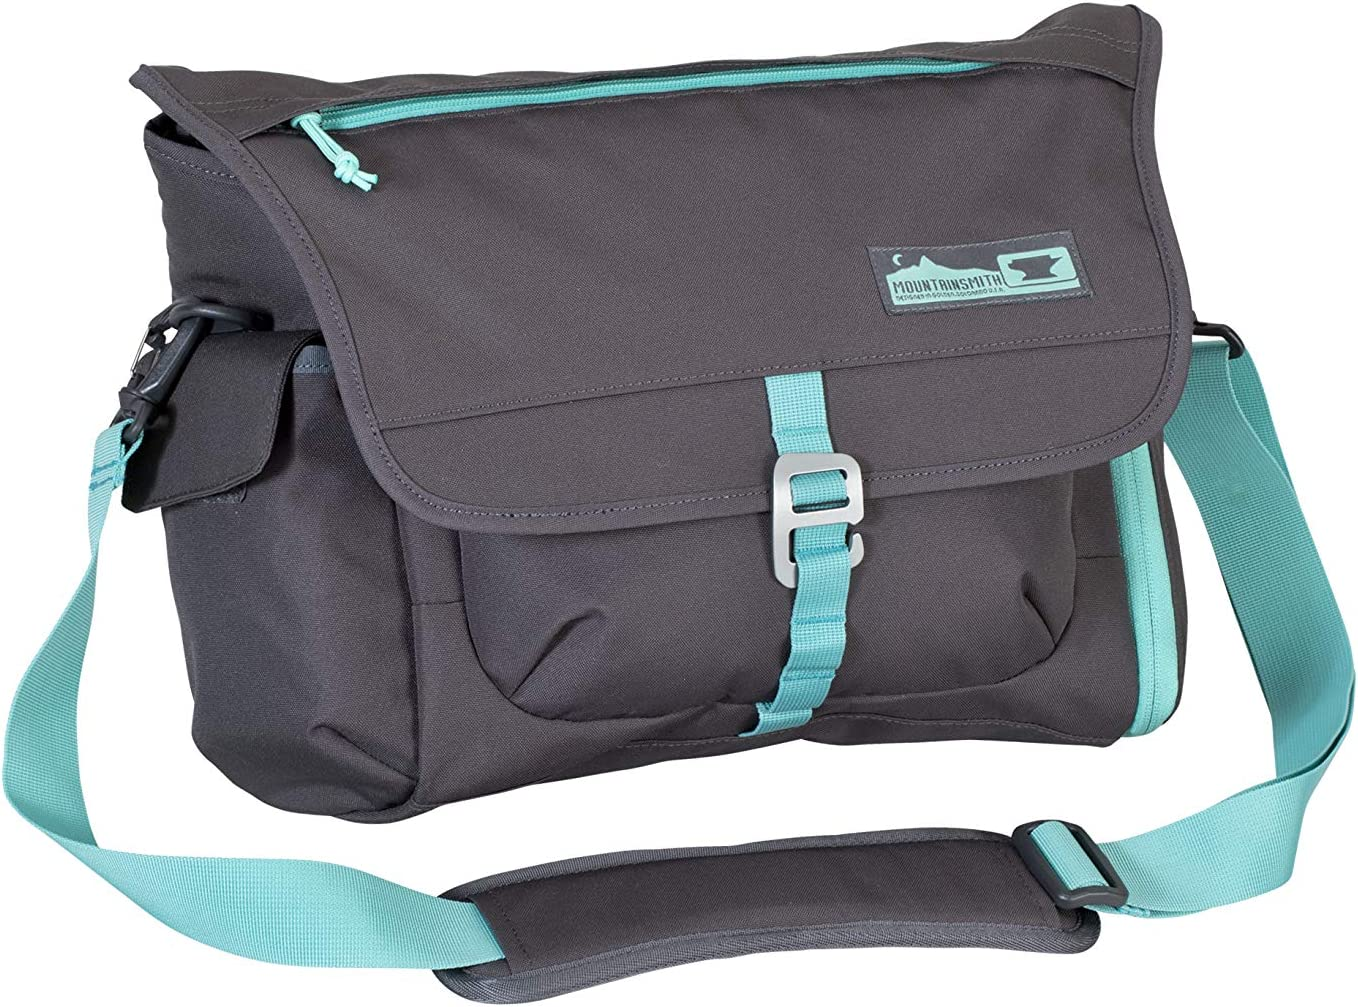 Mountainsmith Adventure Office Small Messenger Bag, Mint, One Size